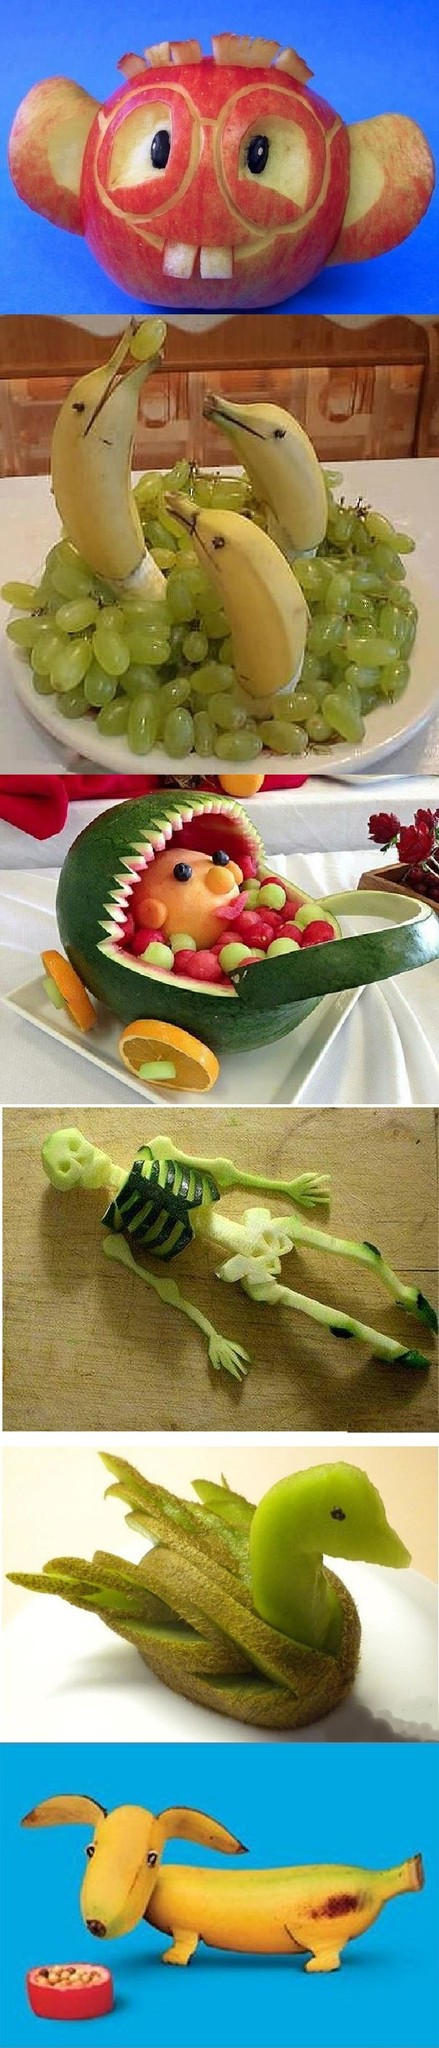 Creative Fruit Arts - meme